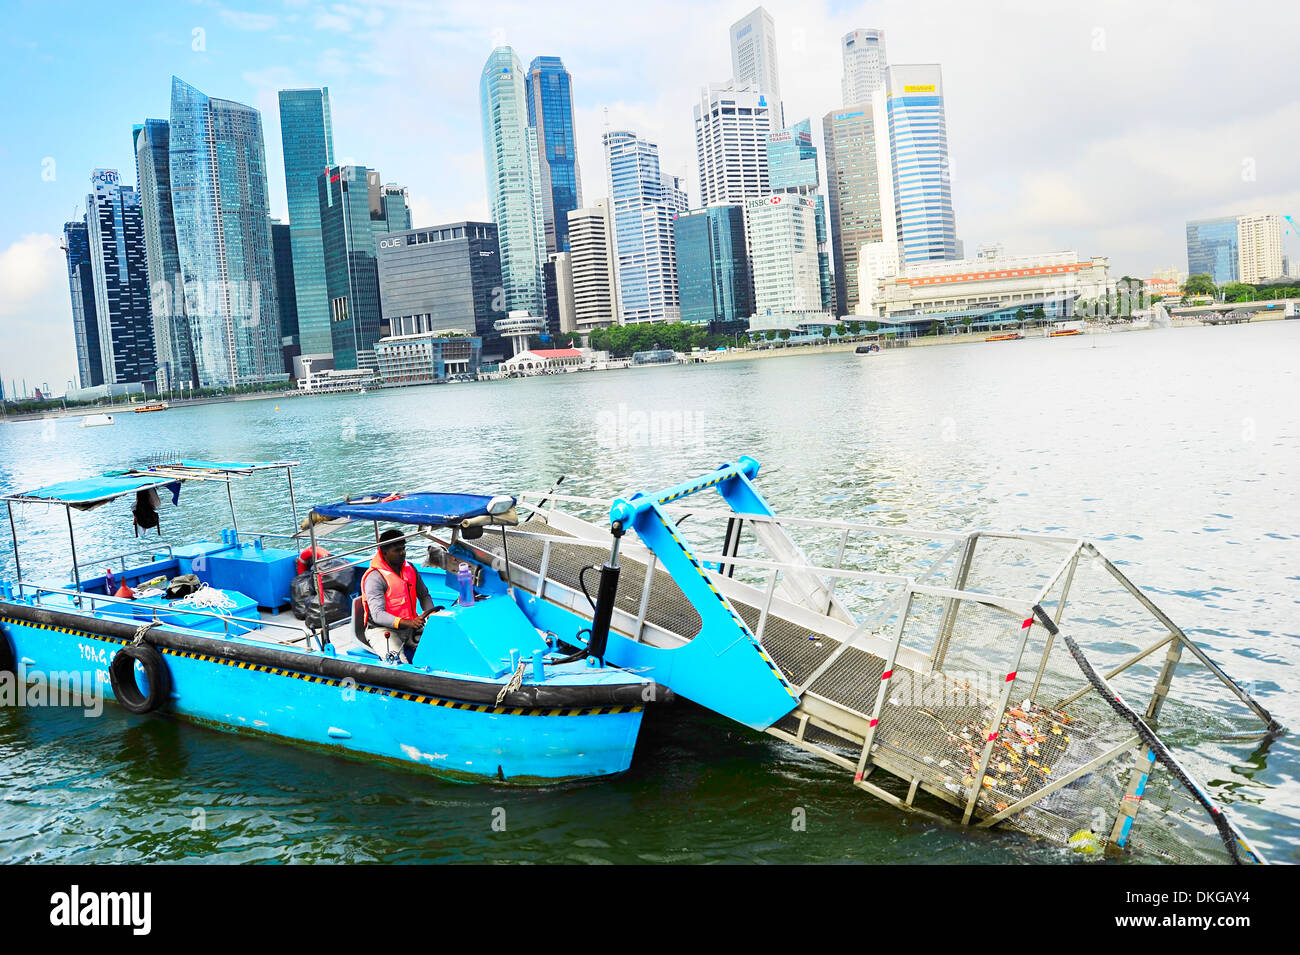 Water surface cleaning boat removing the garbage from the river in front of Singapore downtown - Stock Image